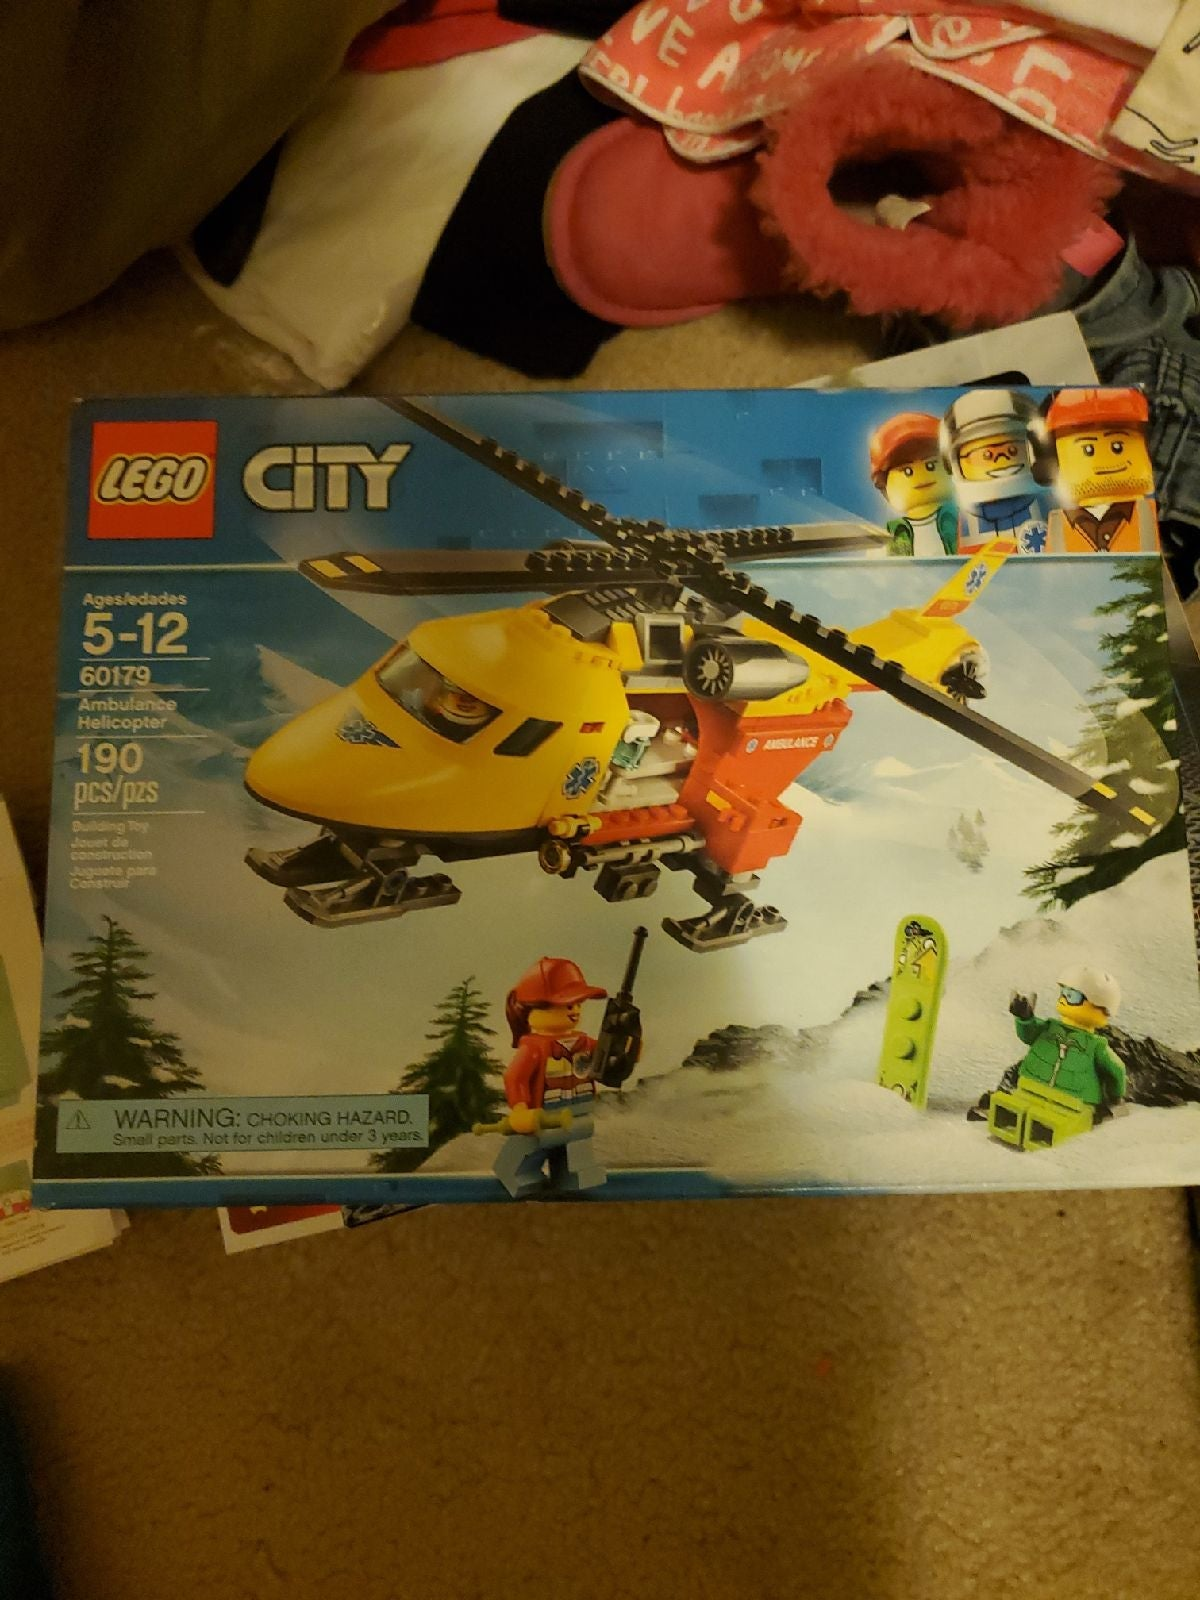 Lego city ambulance hellicopter